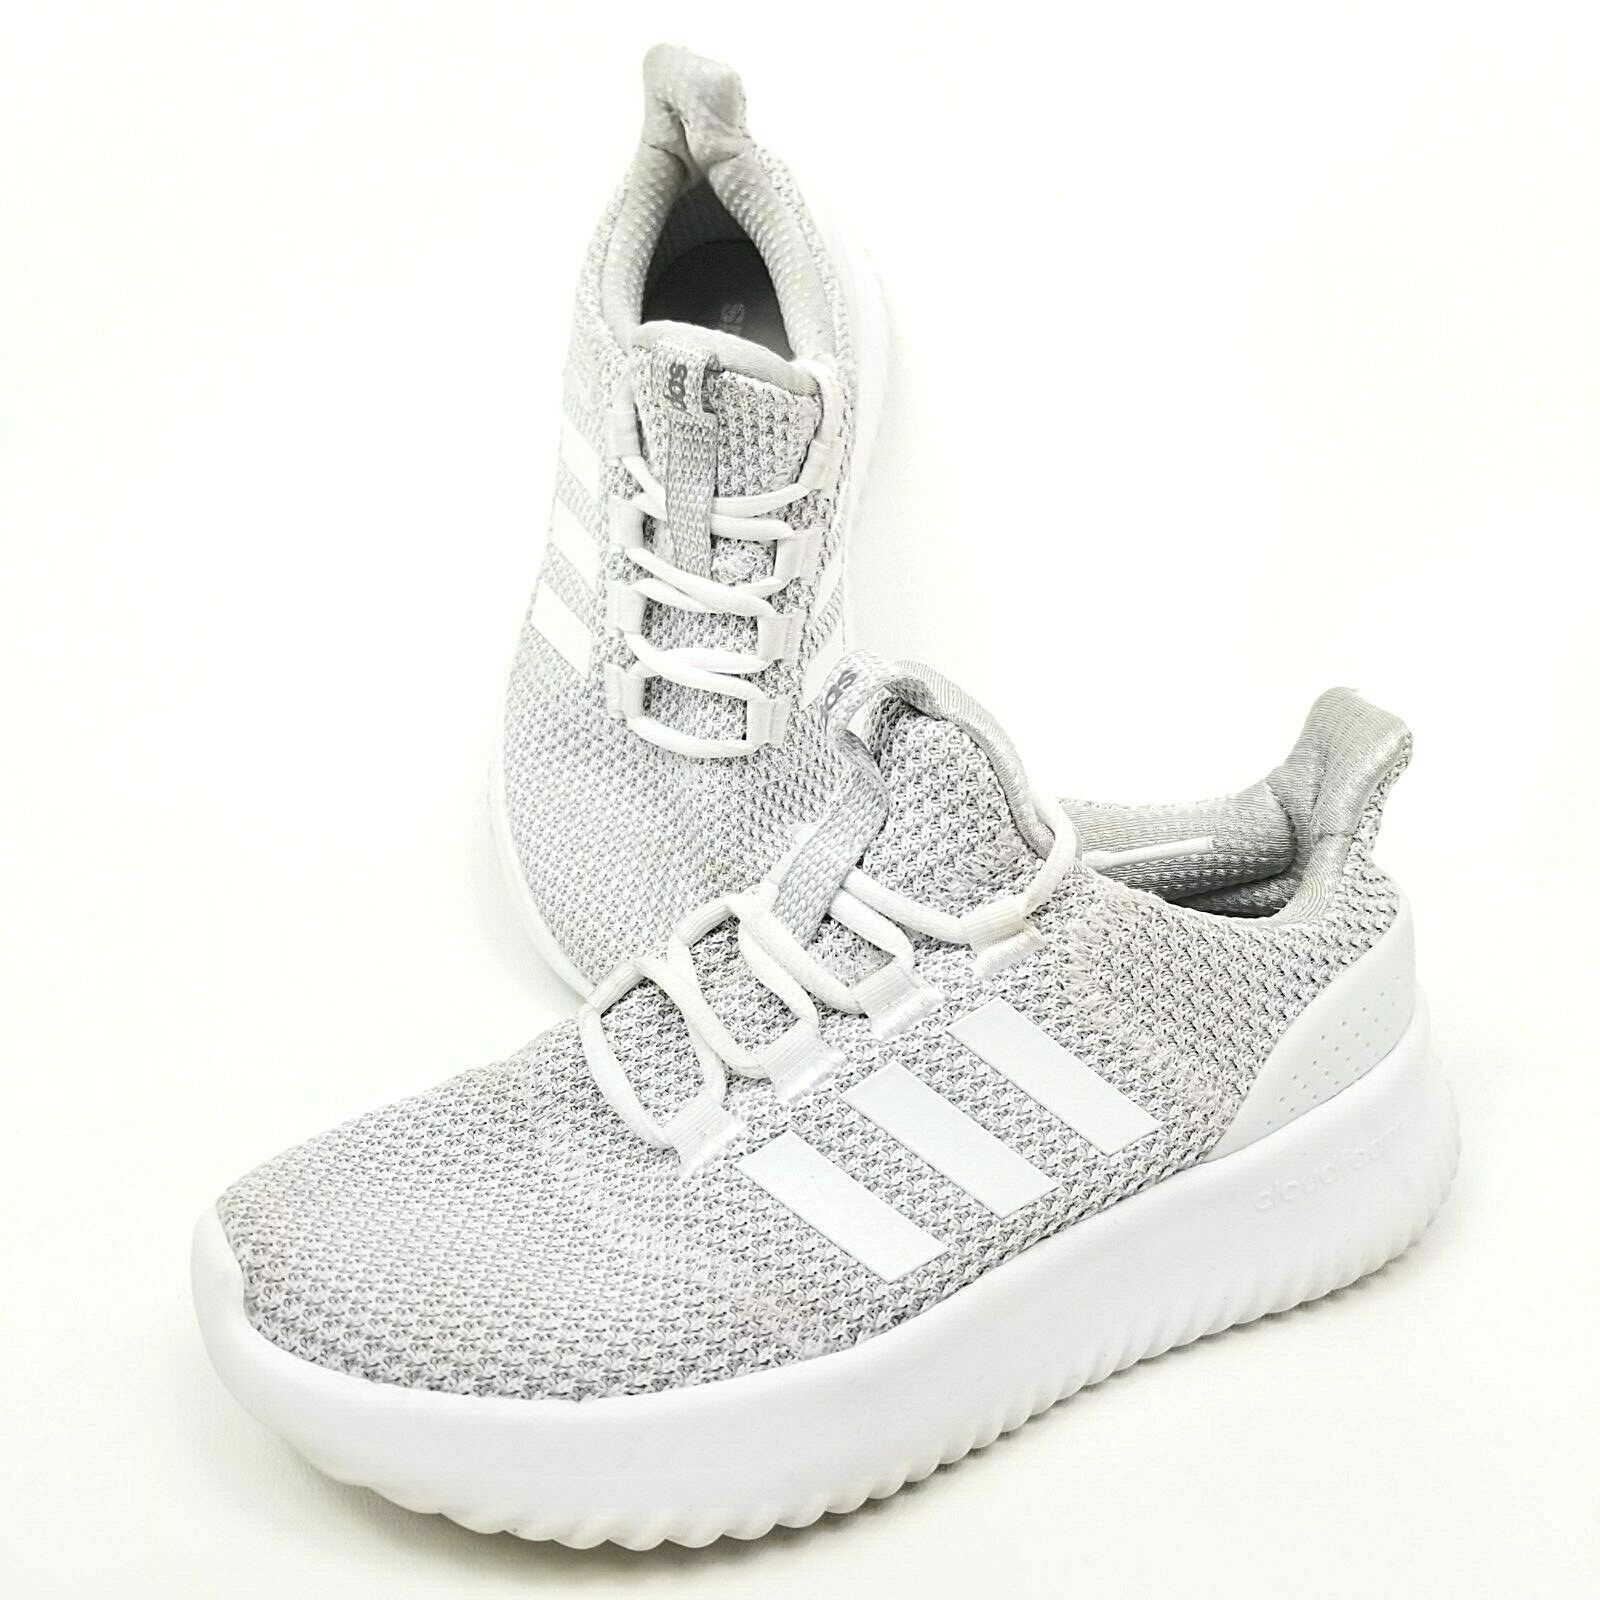 Primary image for Adidas Cloudfoam Ultimate Shoes White Silver Youth Sz 3.5 Womens Size 5.5